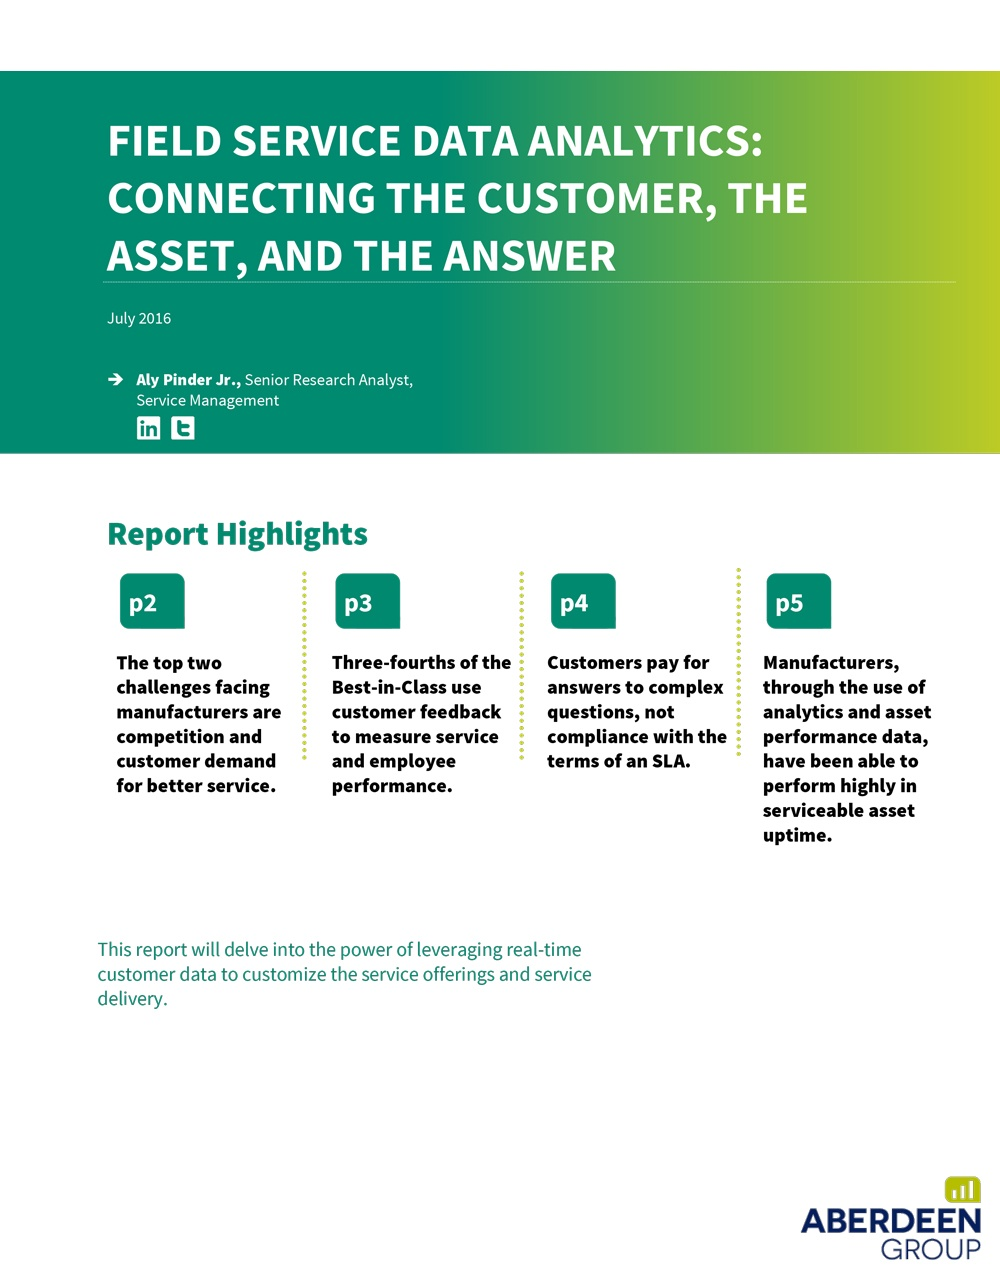 Field Service Data Analytics: Connect the Customer, the Asset, and the Answer